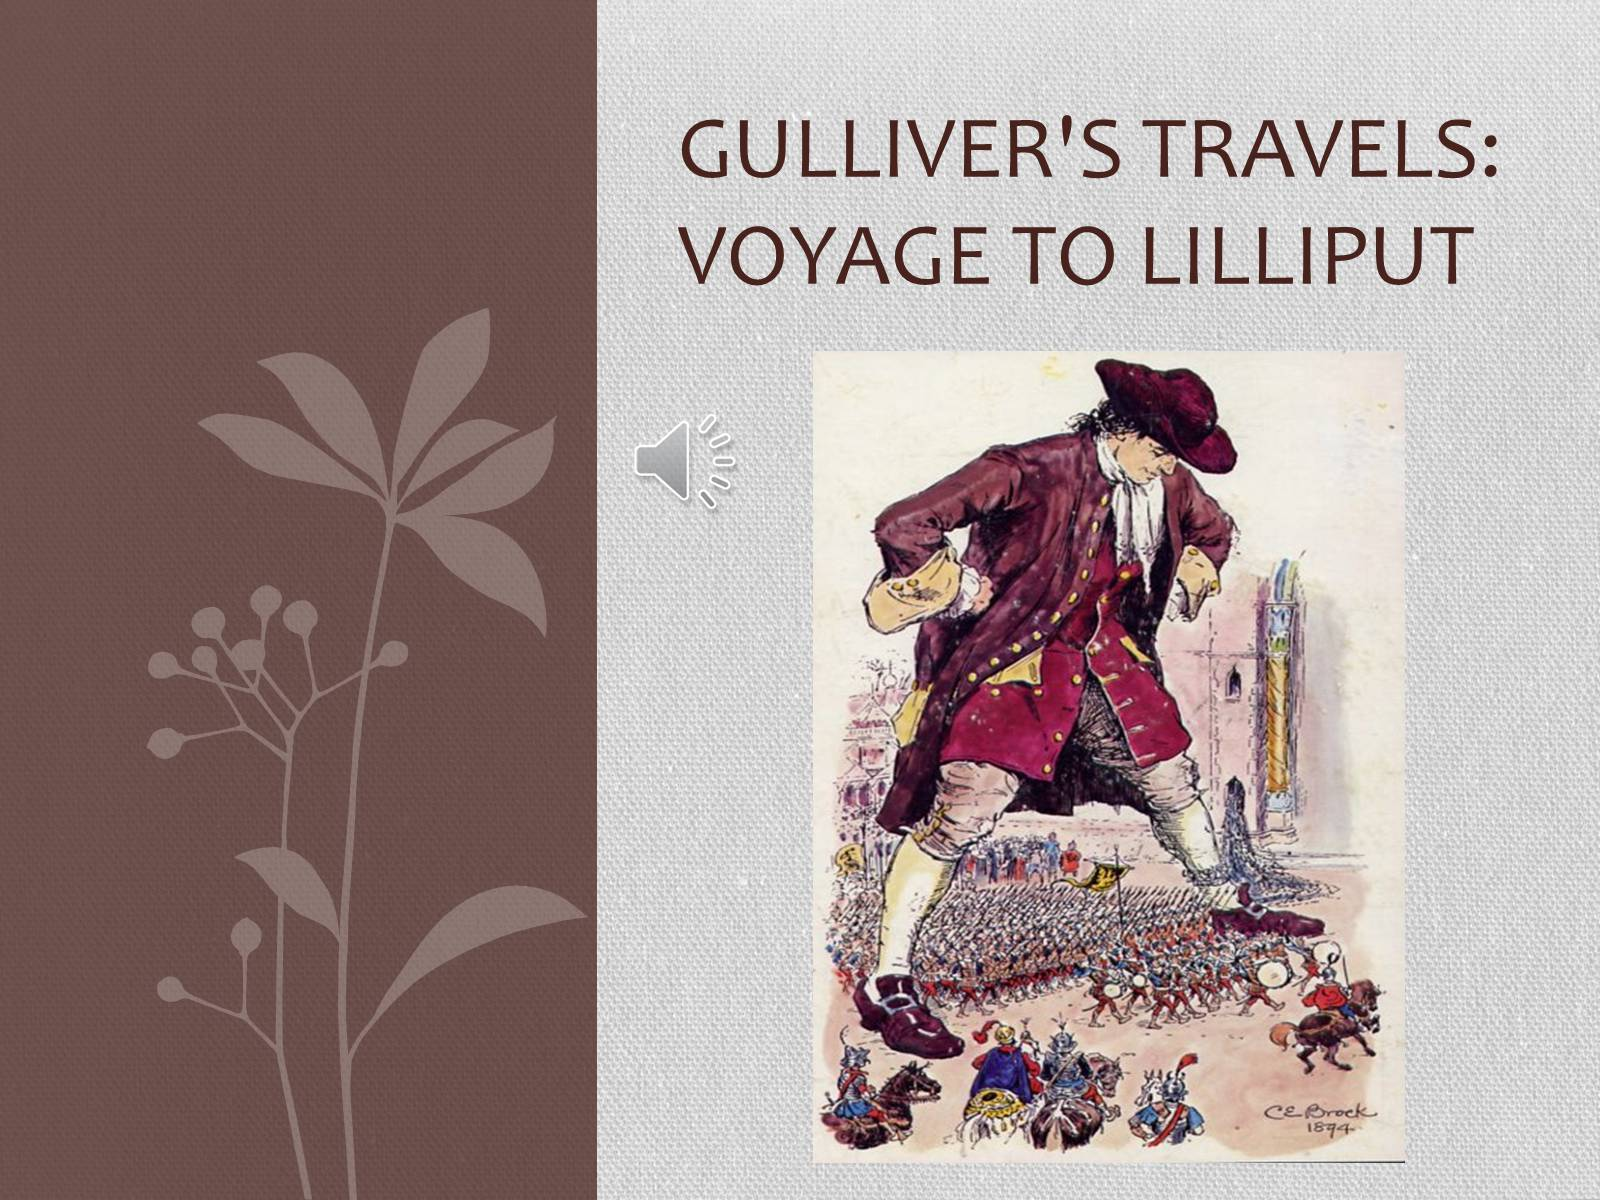 Презентація на тему «Gulliver's Travels: Voyage To Lilliput»